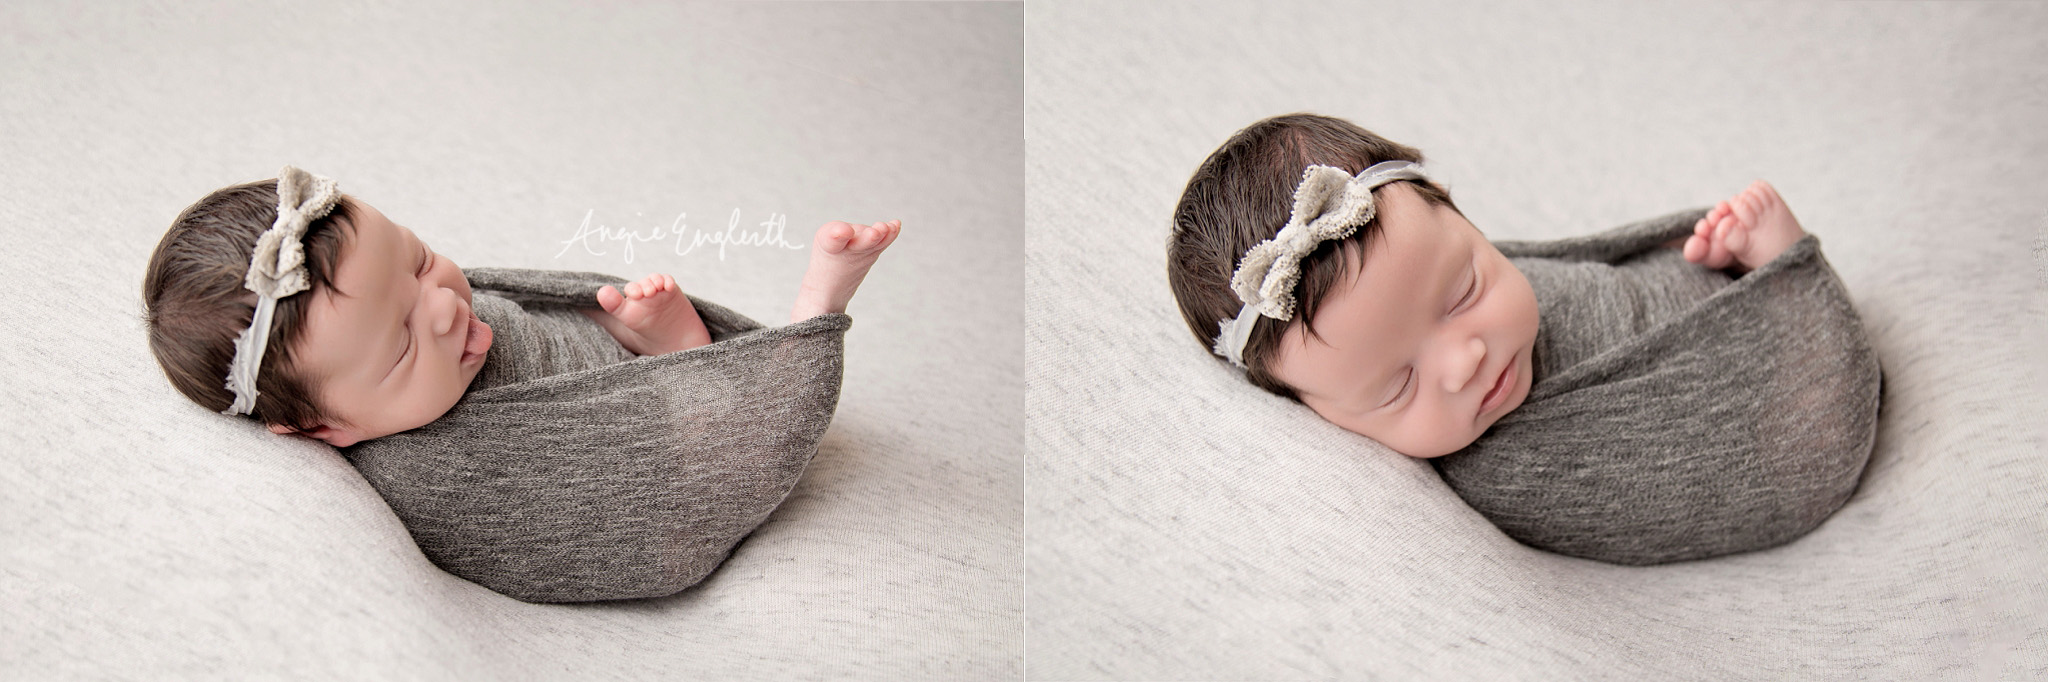 lancaster_newborn_and_maternity_photographer_angie_englerth_central_pa_b011.jpg